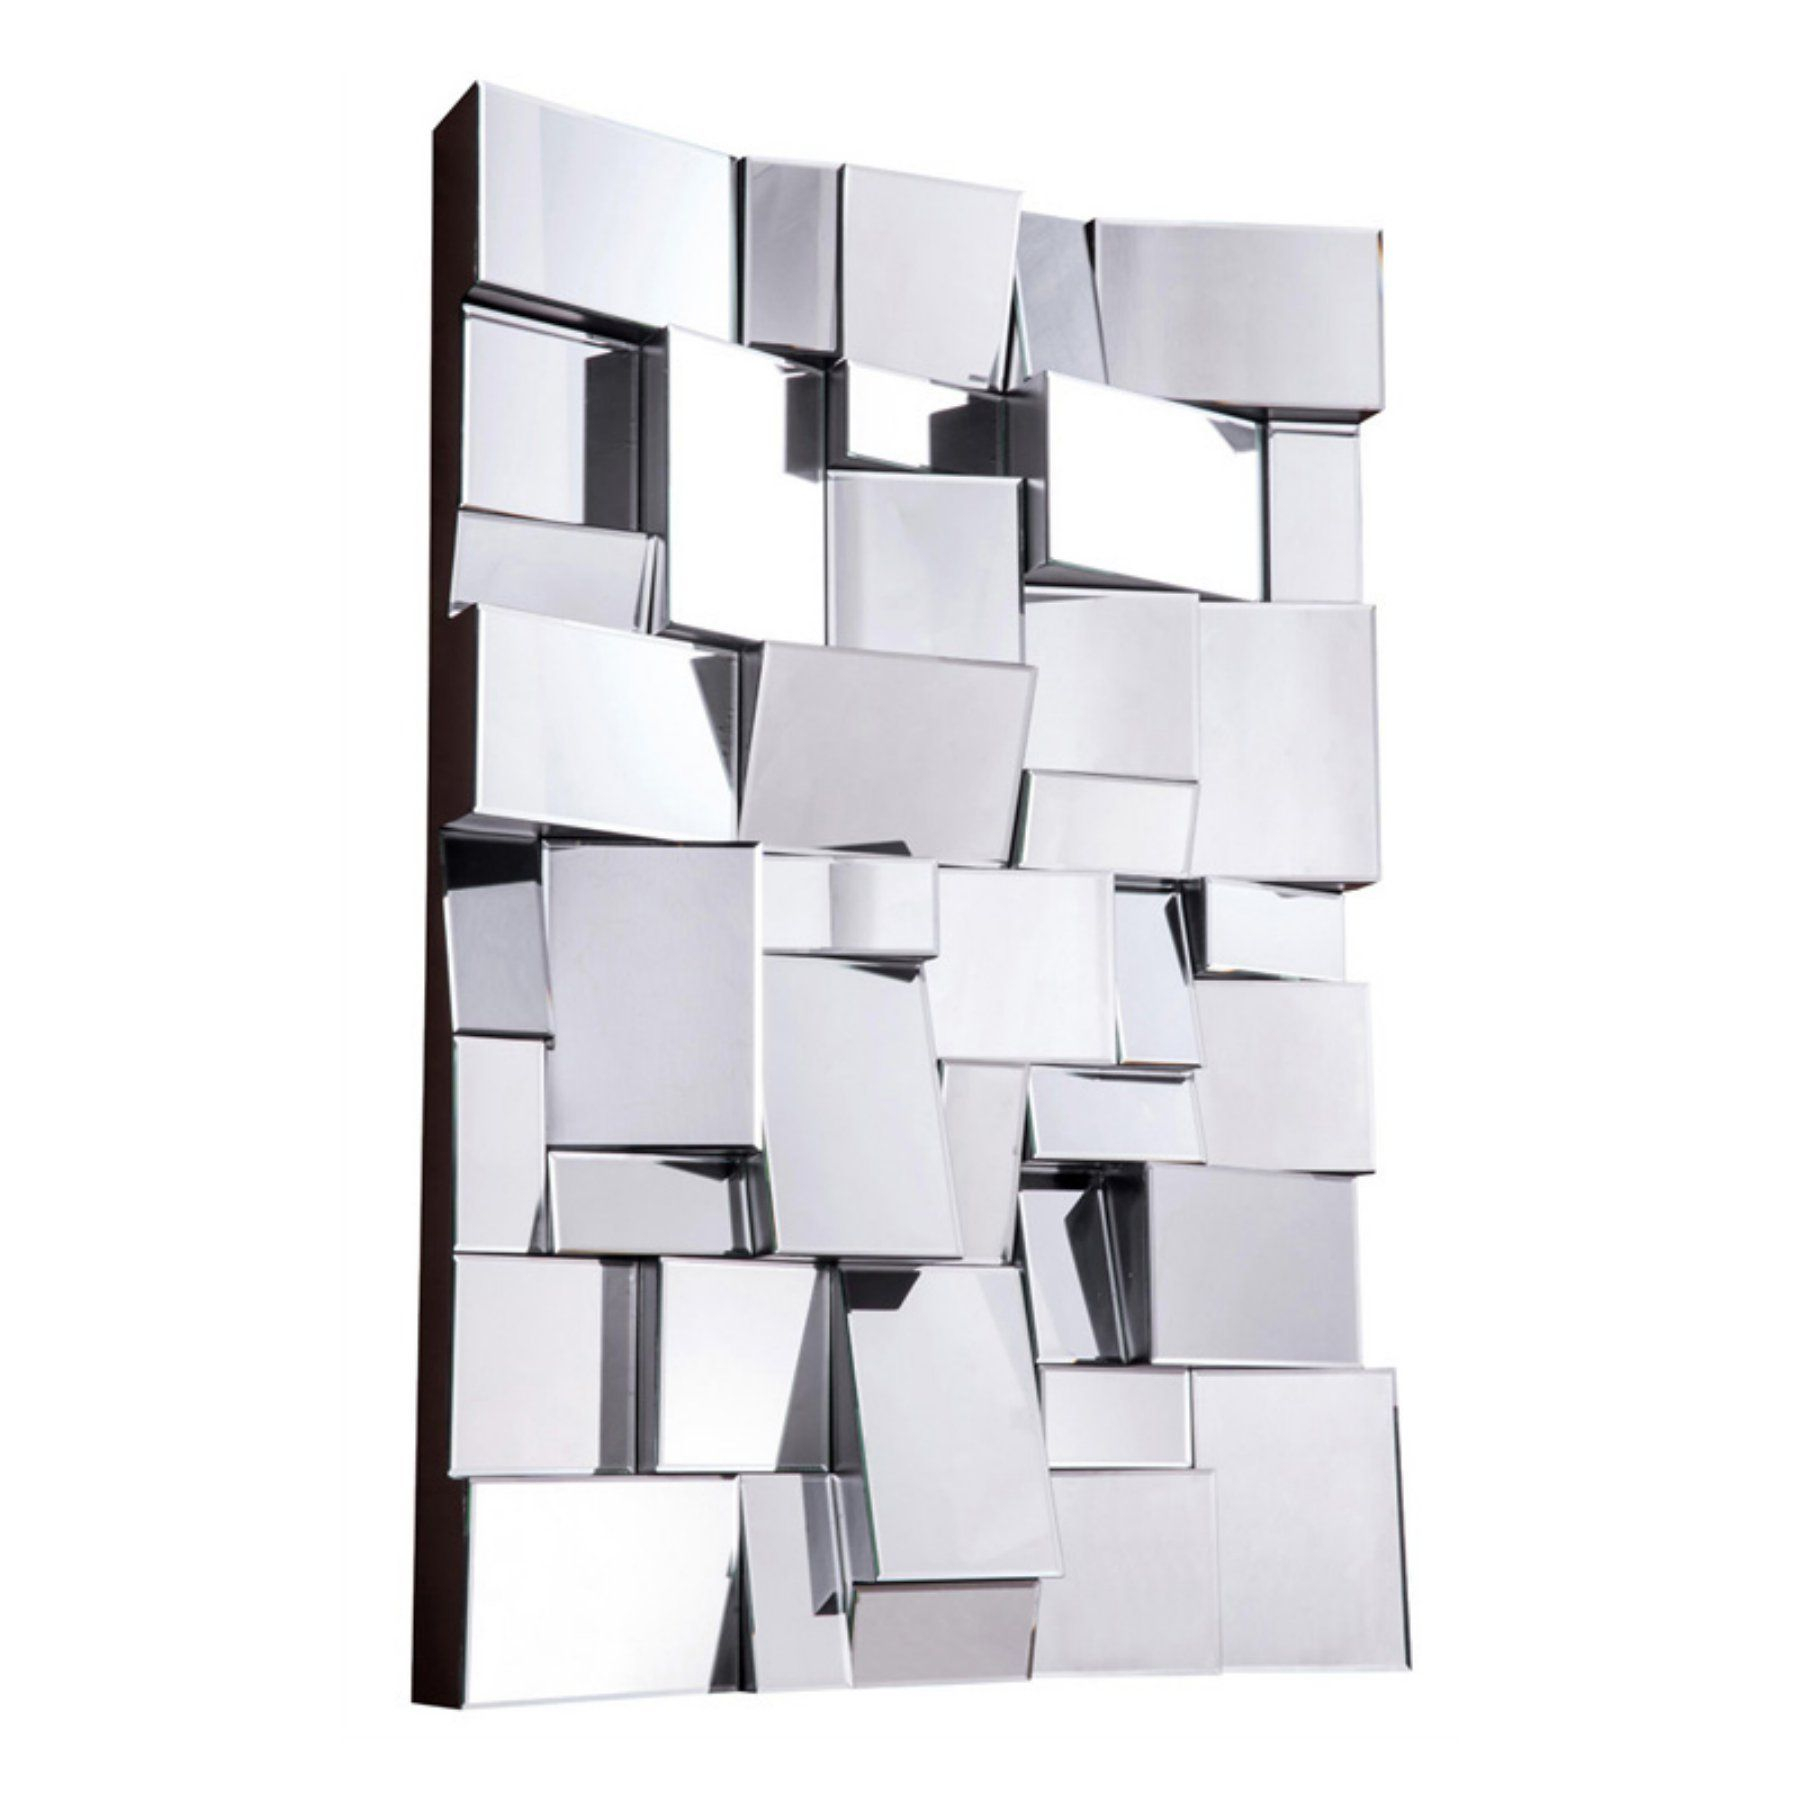 Pinterest – Пинтерест throughout Pennsburg Rectangle Wall Mirrors (Image 19 of 30)